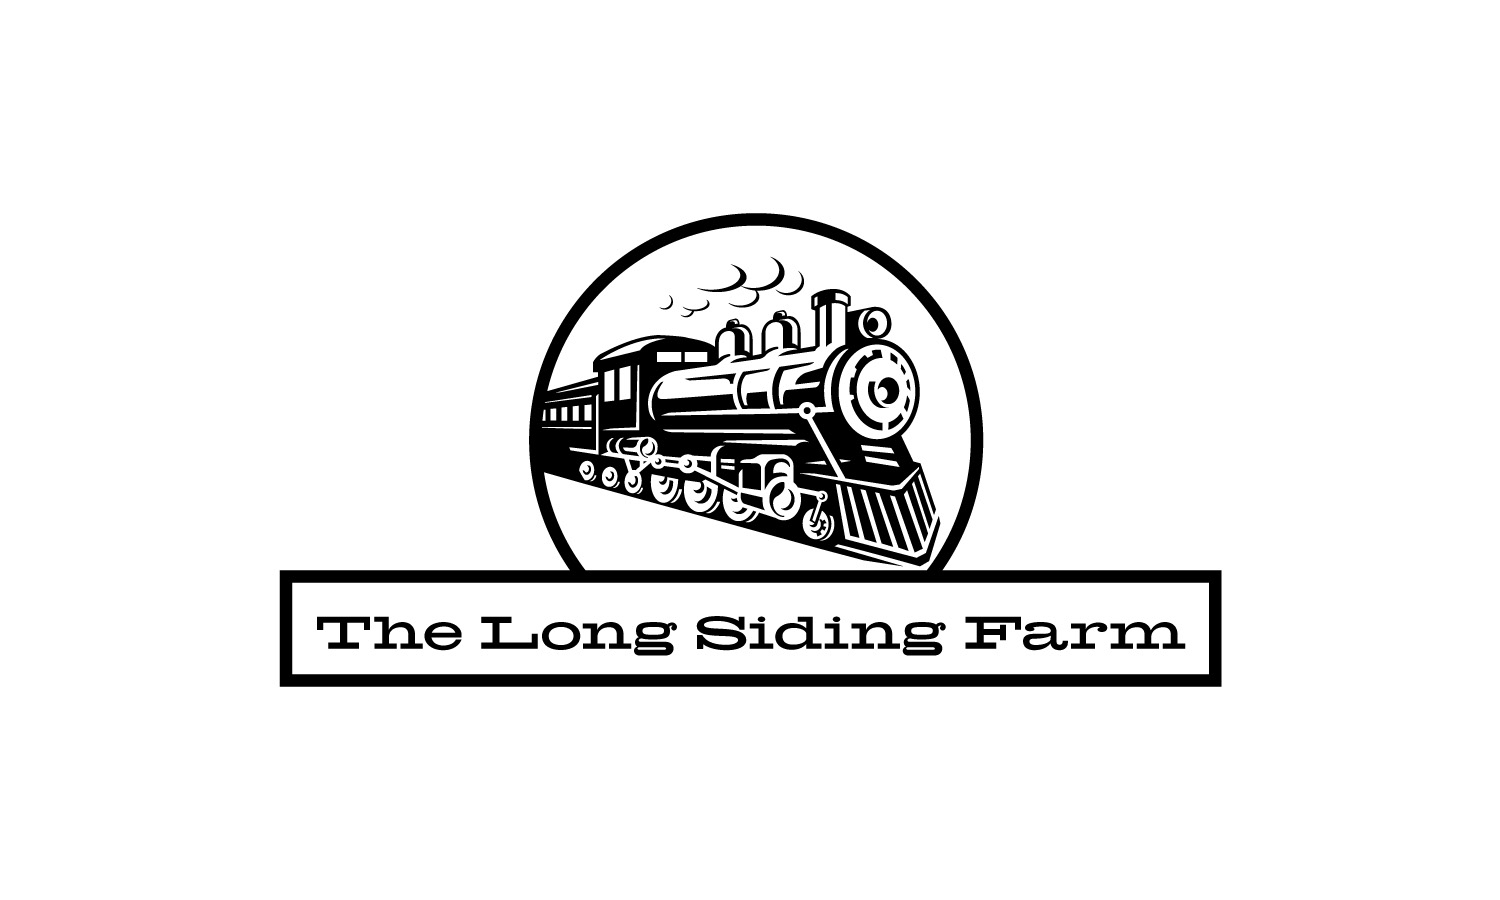 The Long Siding Farm